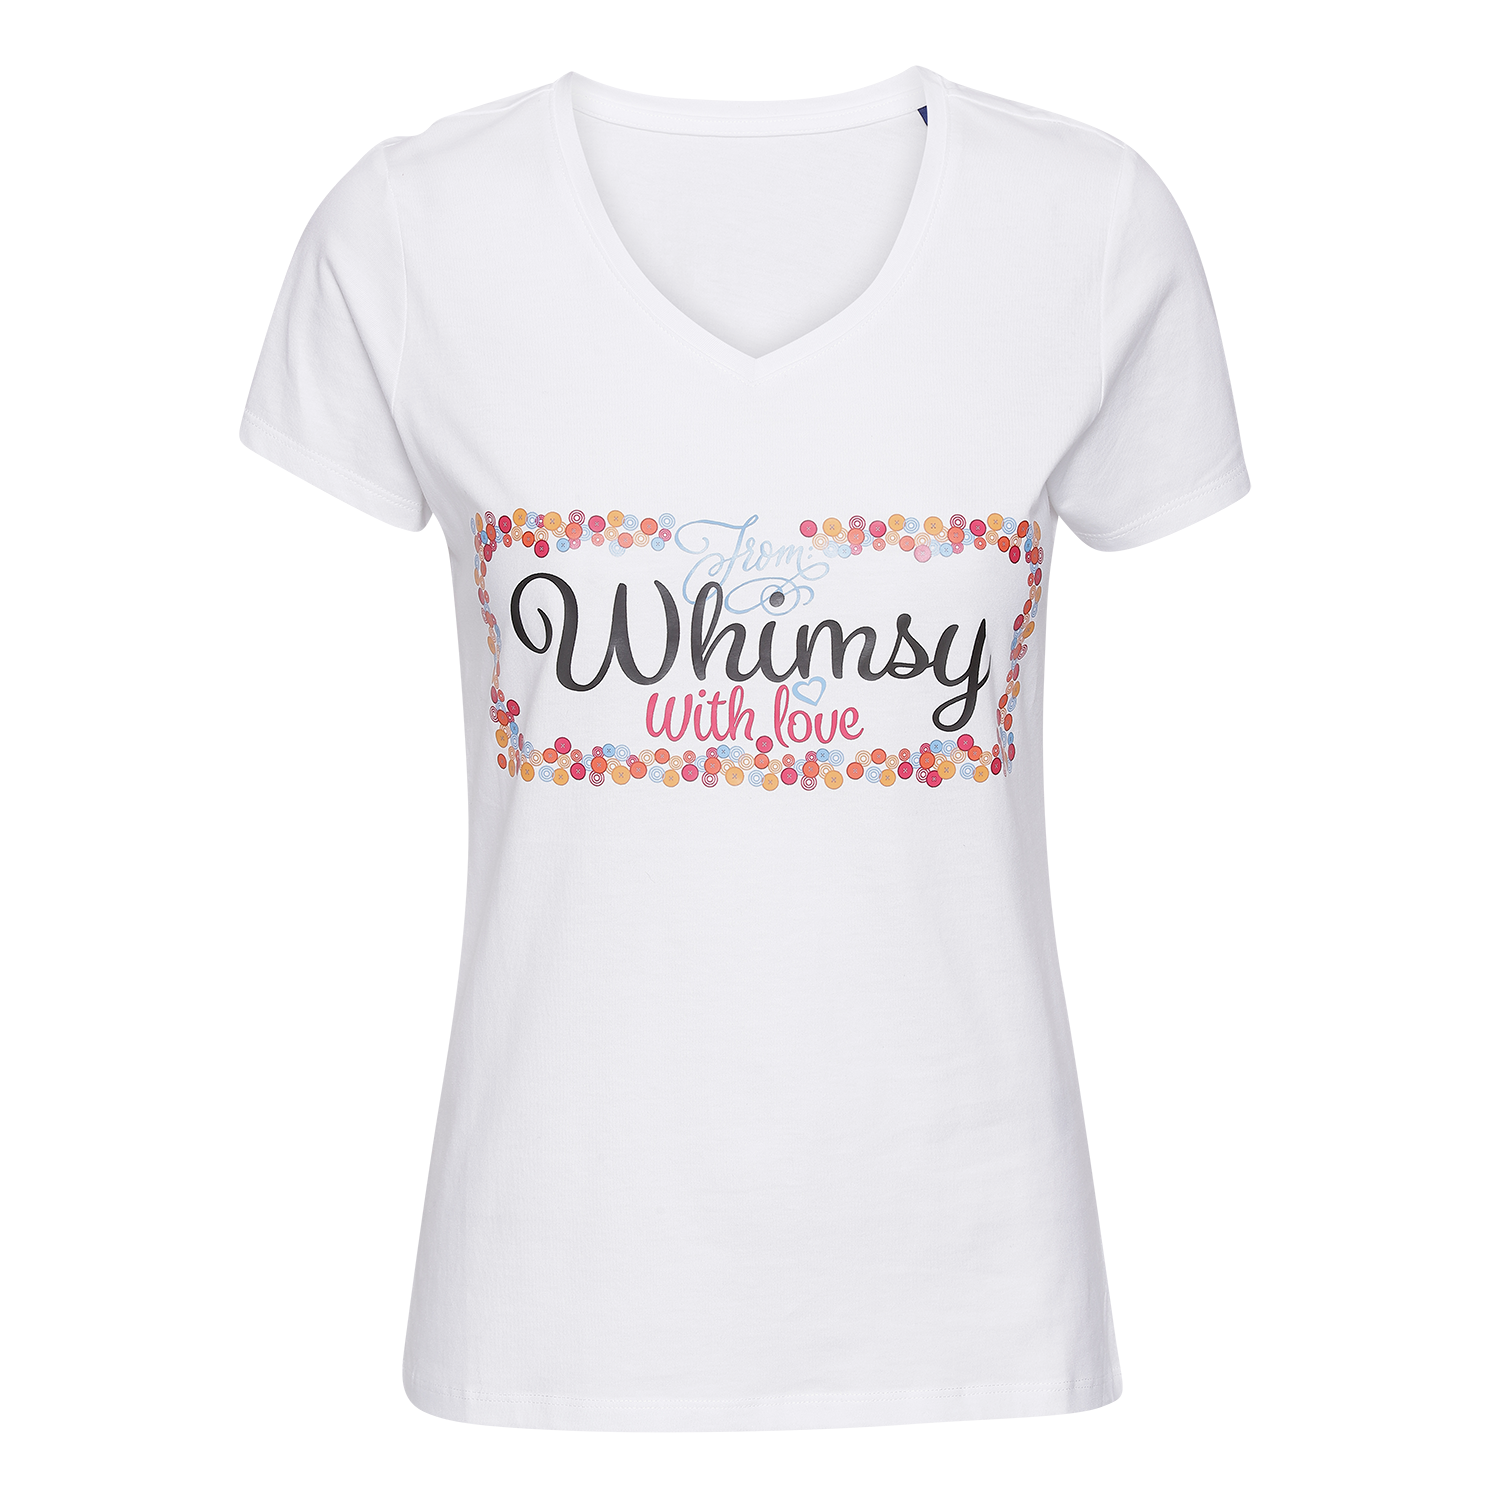 From Whimsy with Love T-shirt